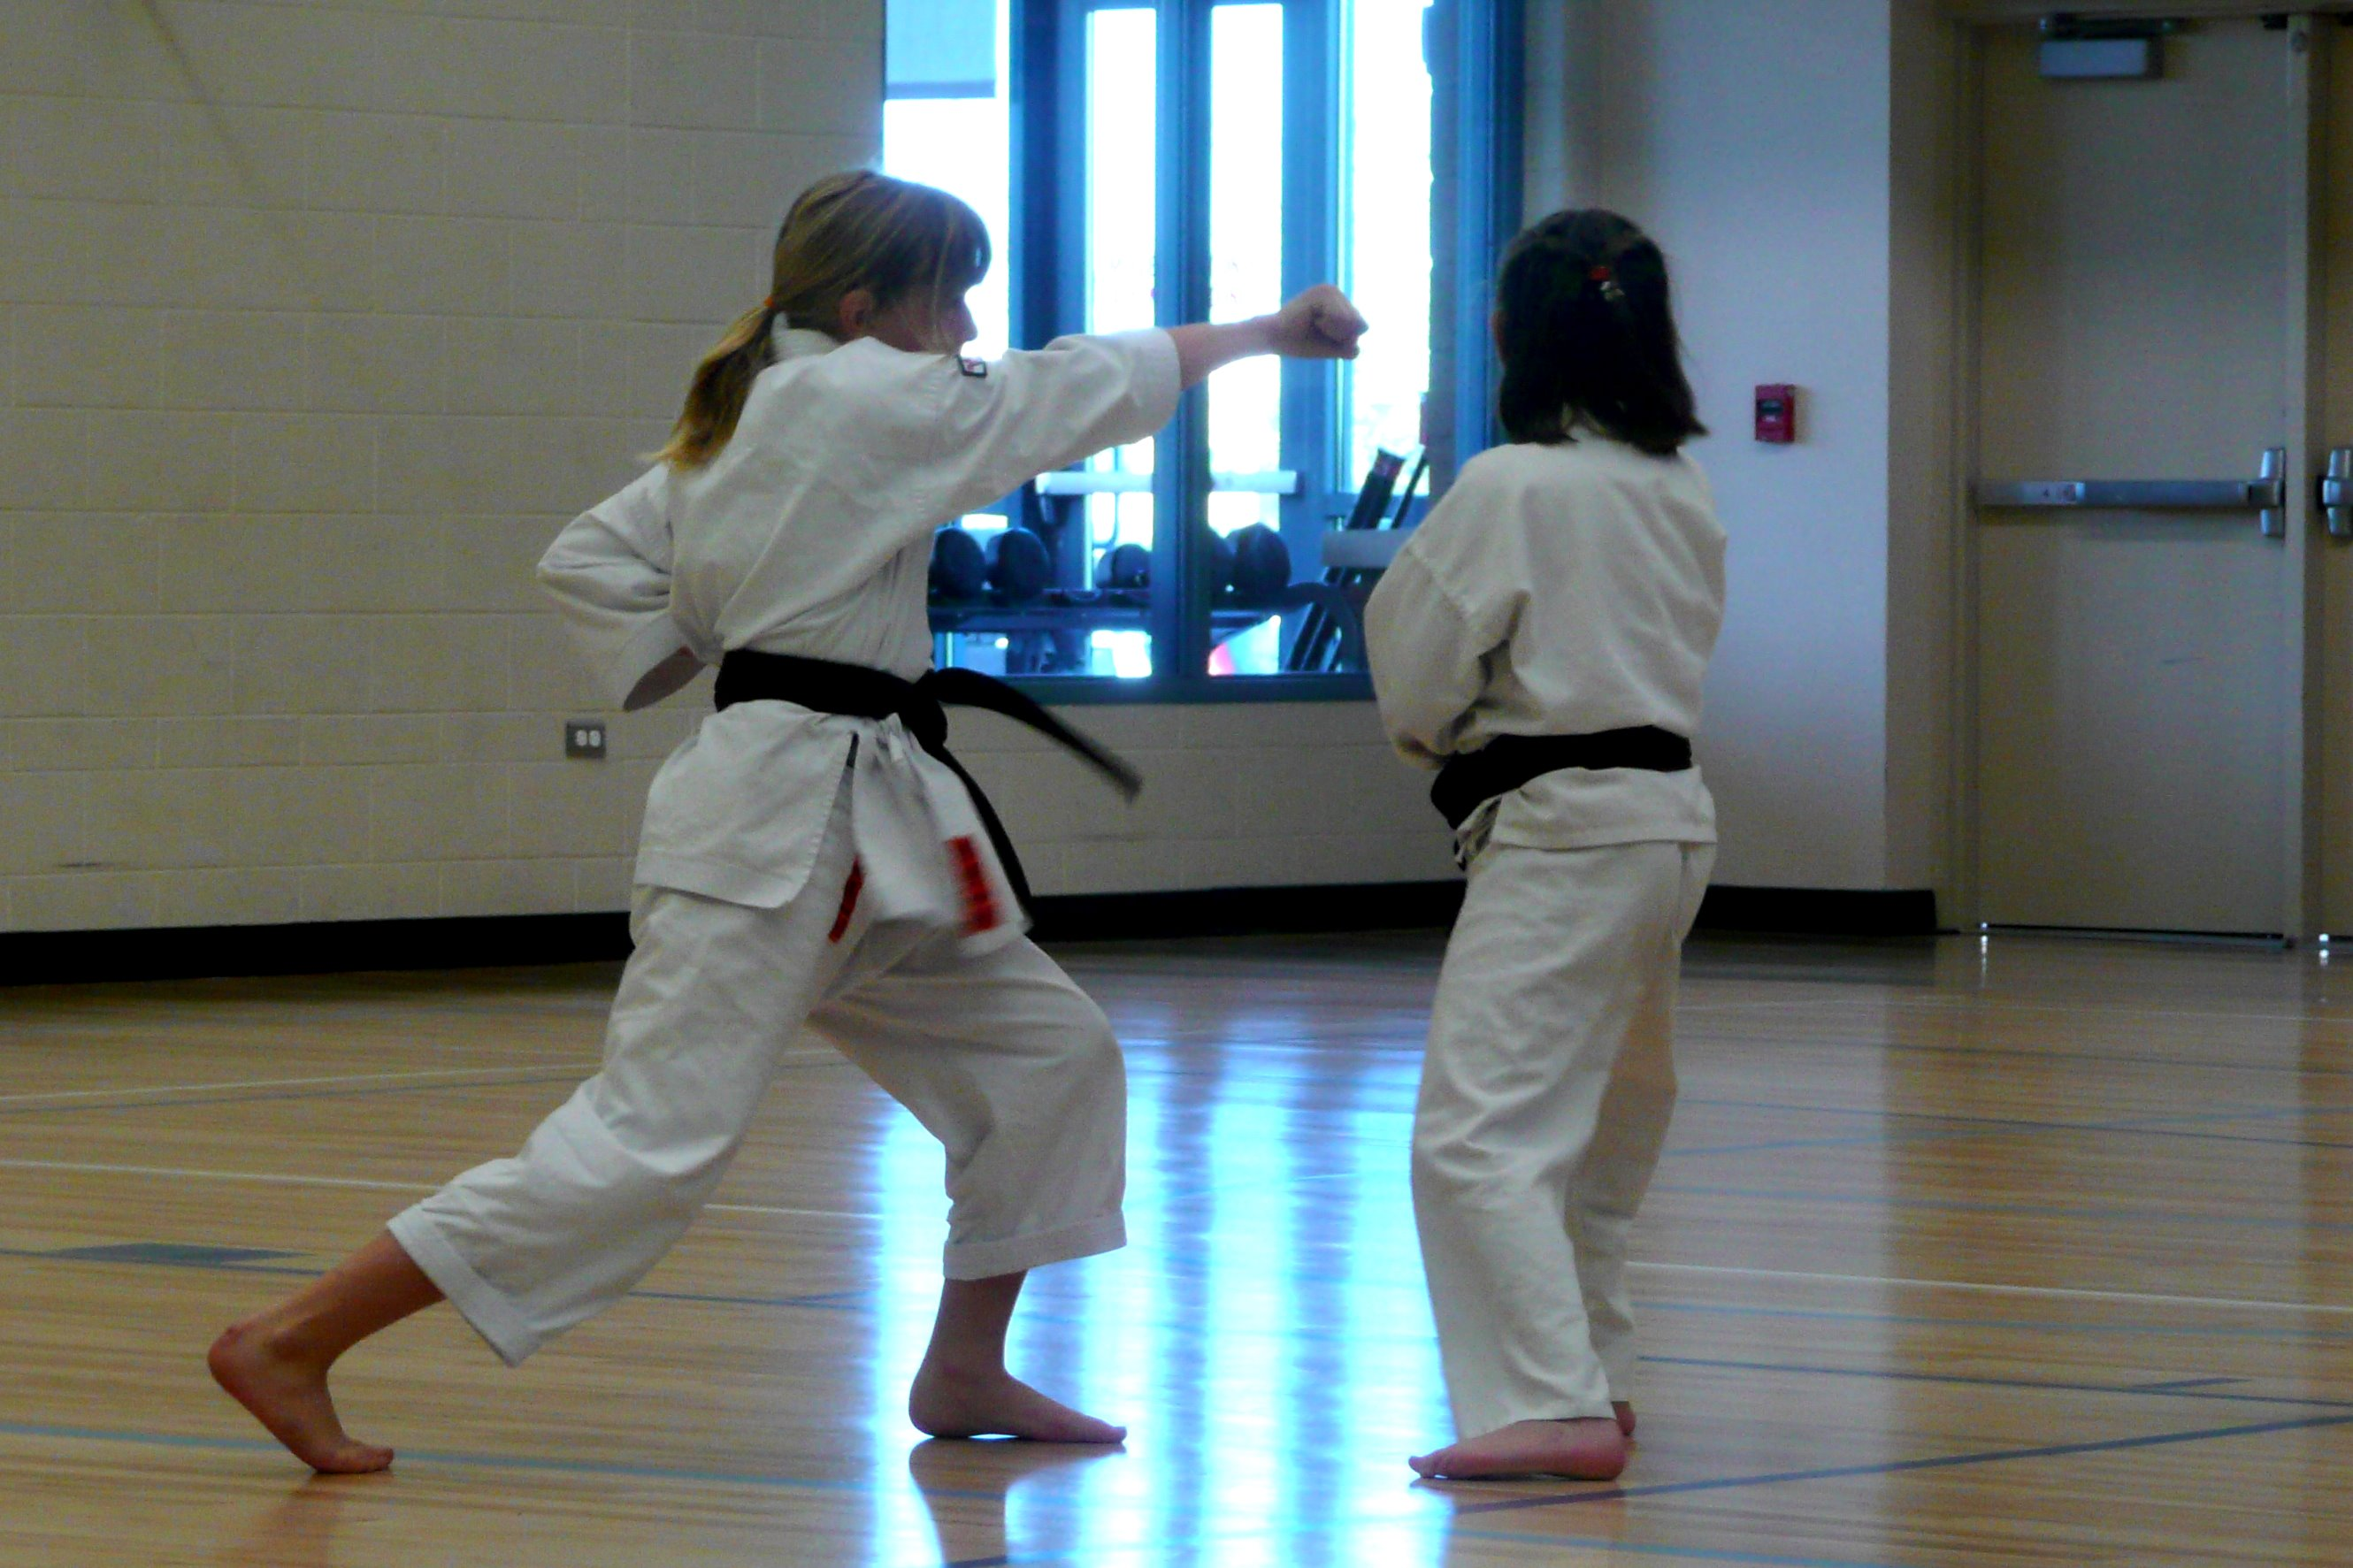 Karate Test Kumite - Teen Rehab